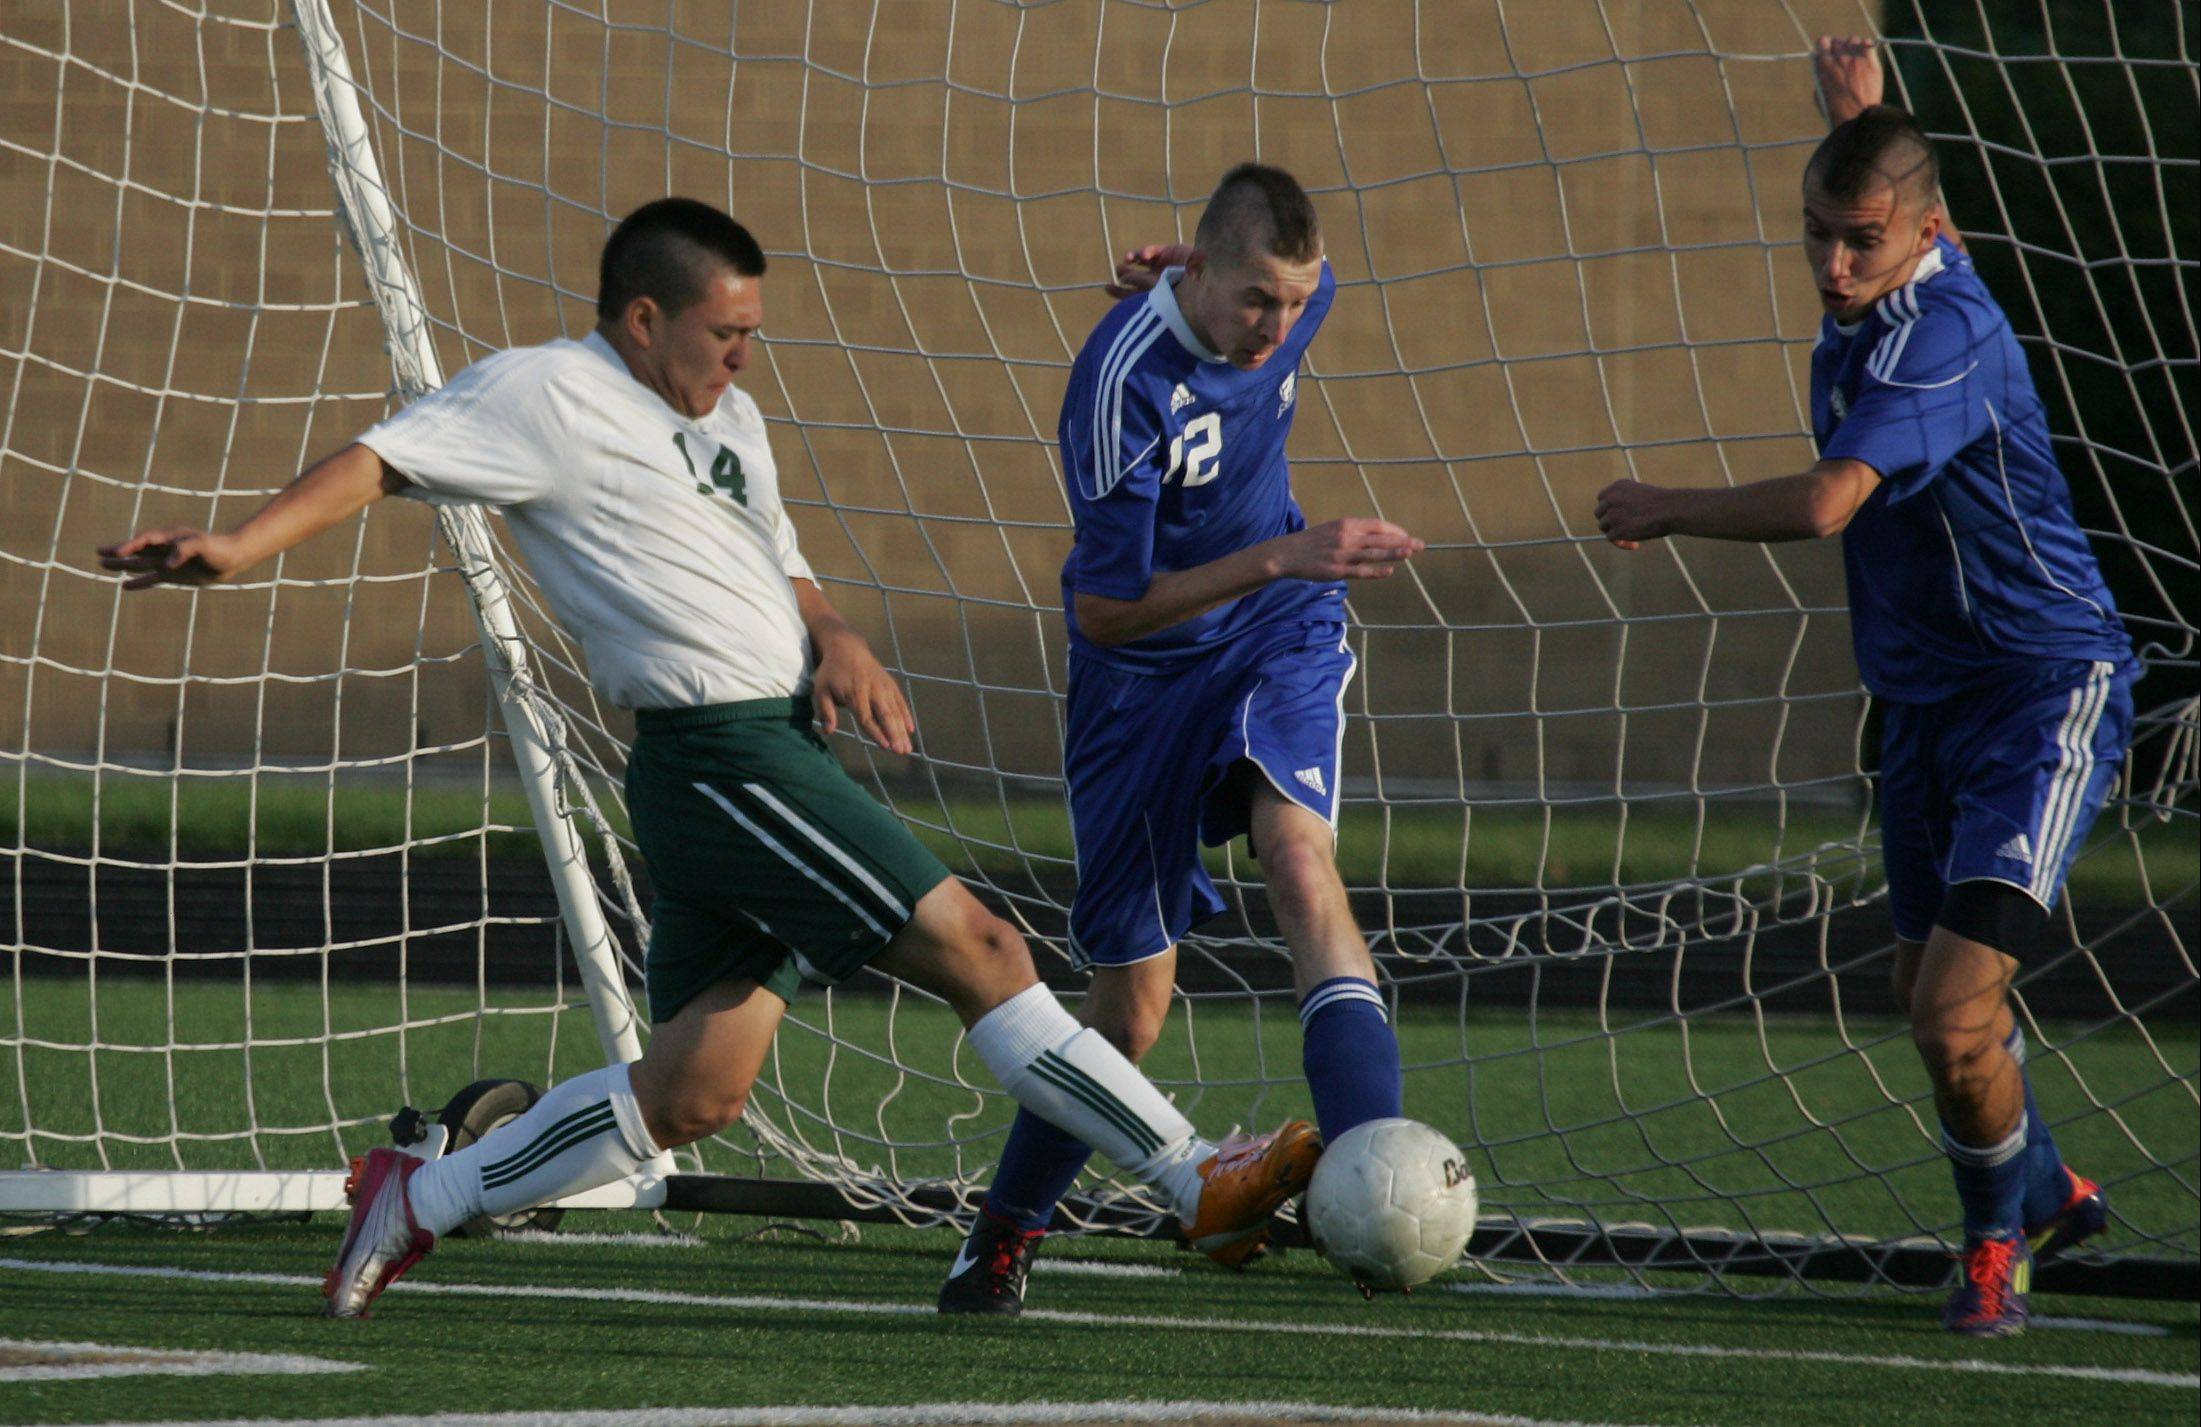 Stevenson's Ceasar Navarro scores the first goal of the game between Lake Zurich's James Blasko and Kevin Loch during Class 3A boys regional semifinal play Tuesday in Lincolnshire.